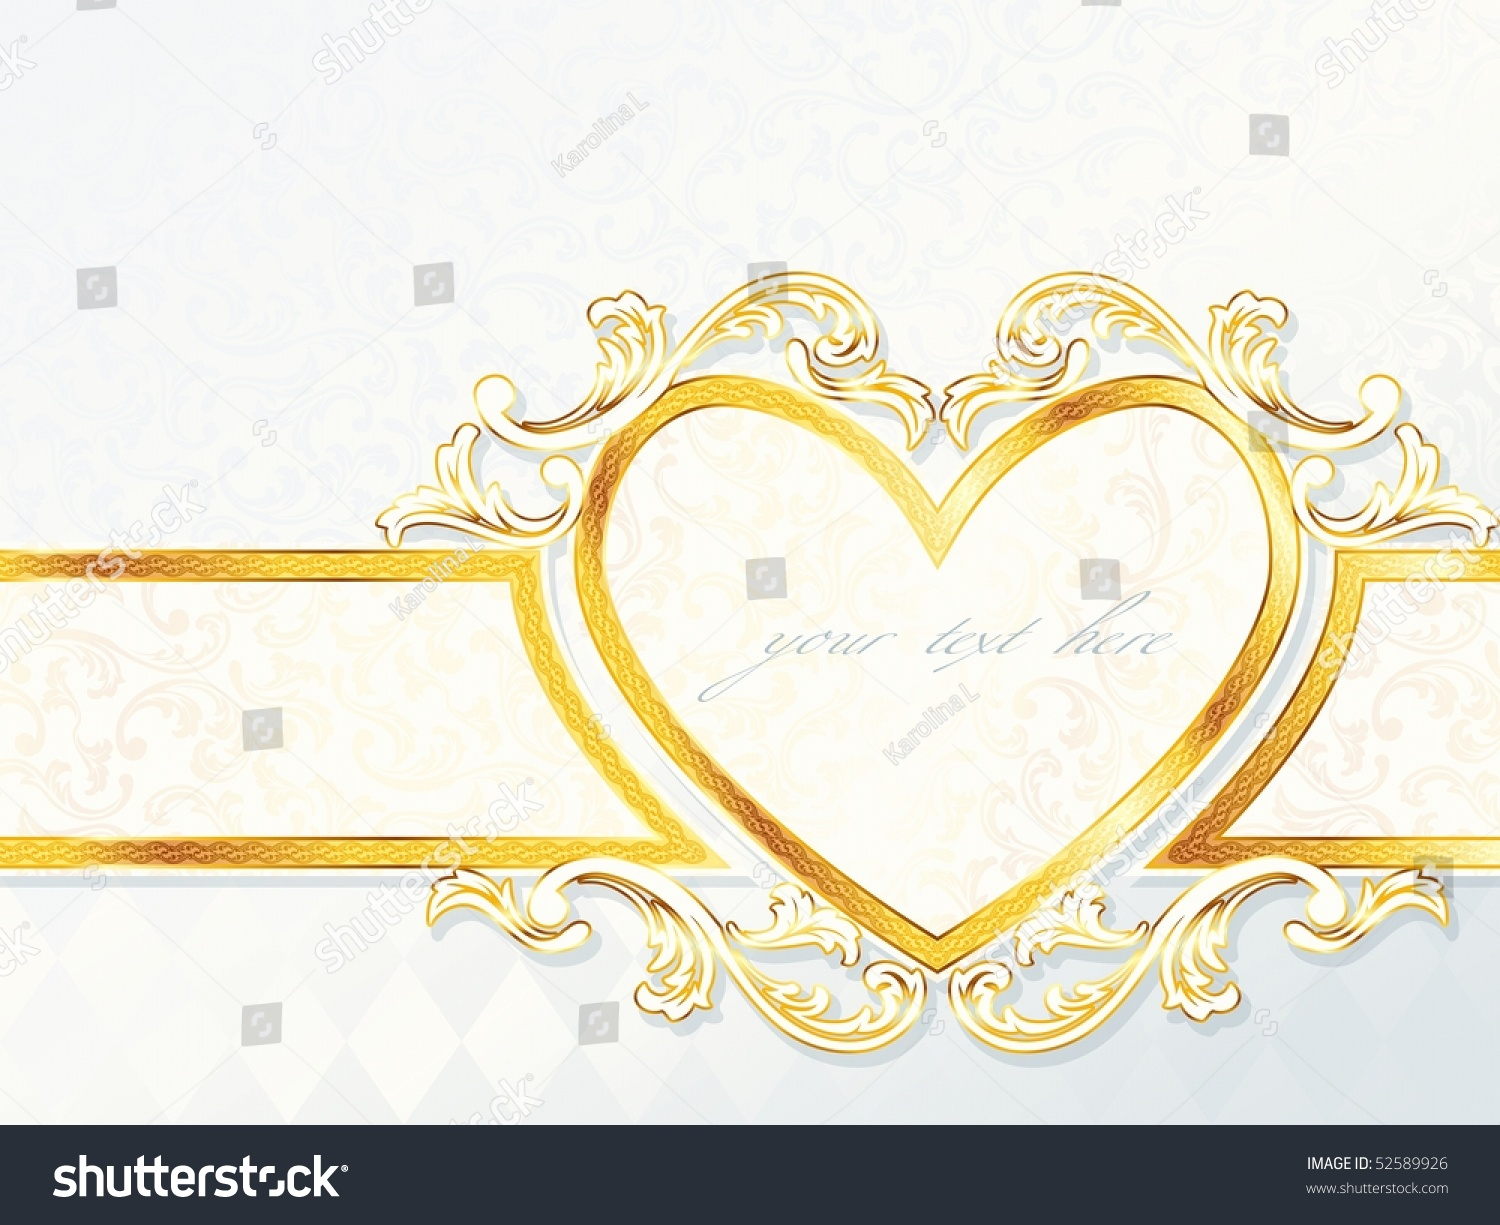 Horizontal Rococo Wedding Banner Heart Emblem Stock Vector ...